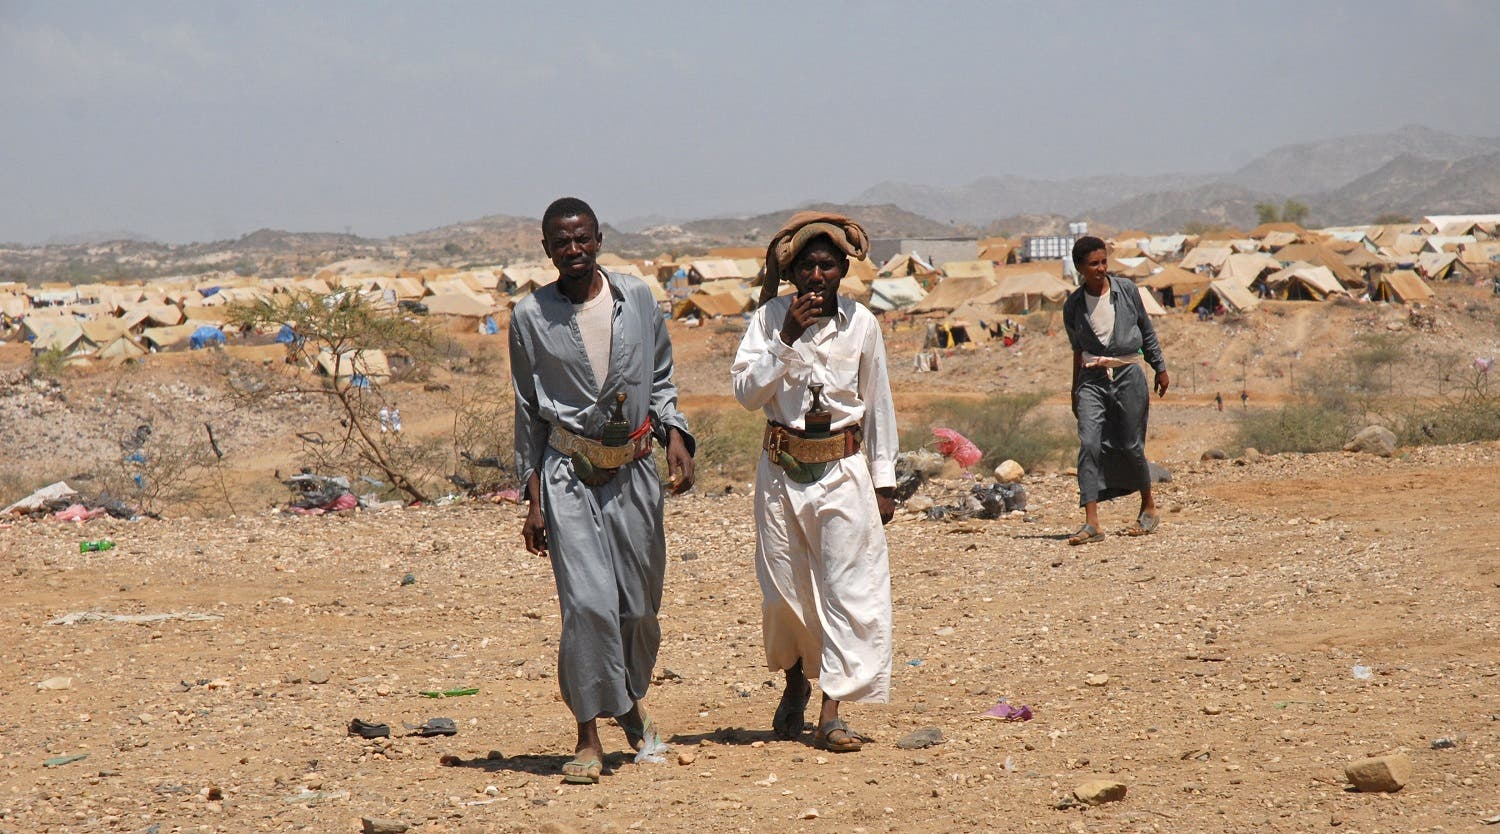 Yemeni men wearing their traditional curved daggers in their belts walk in the grounds of the Mazraq camp set-up for internally displaced Yemenis in the northwestern province of Hajjah.